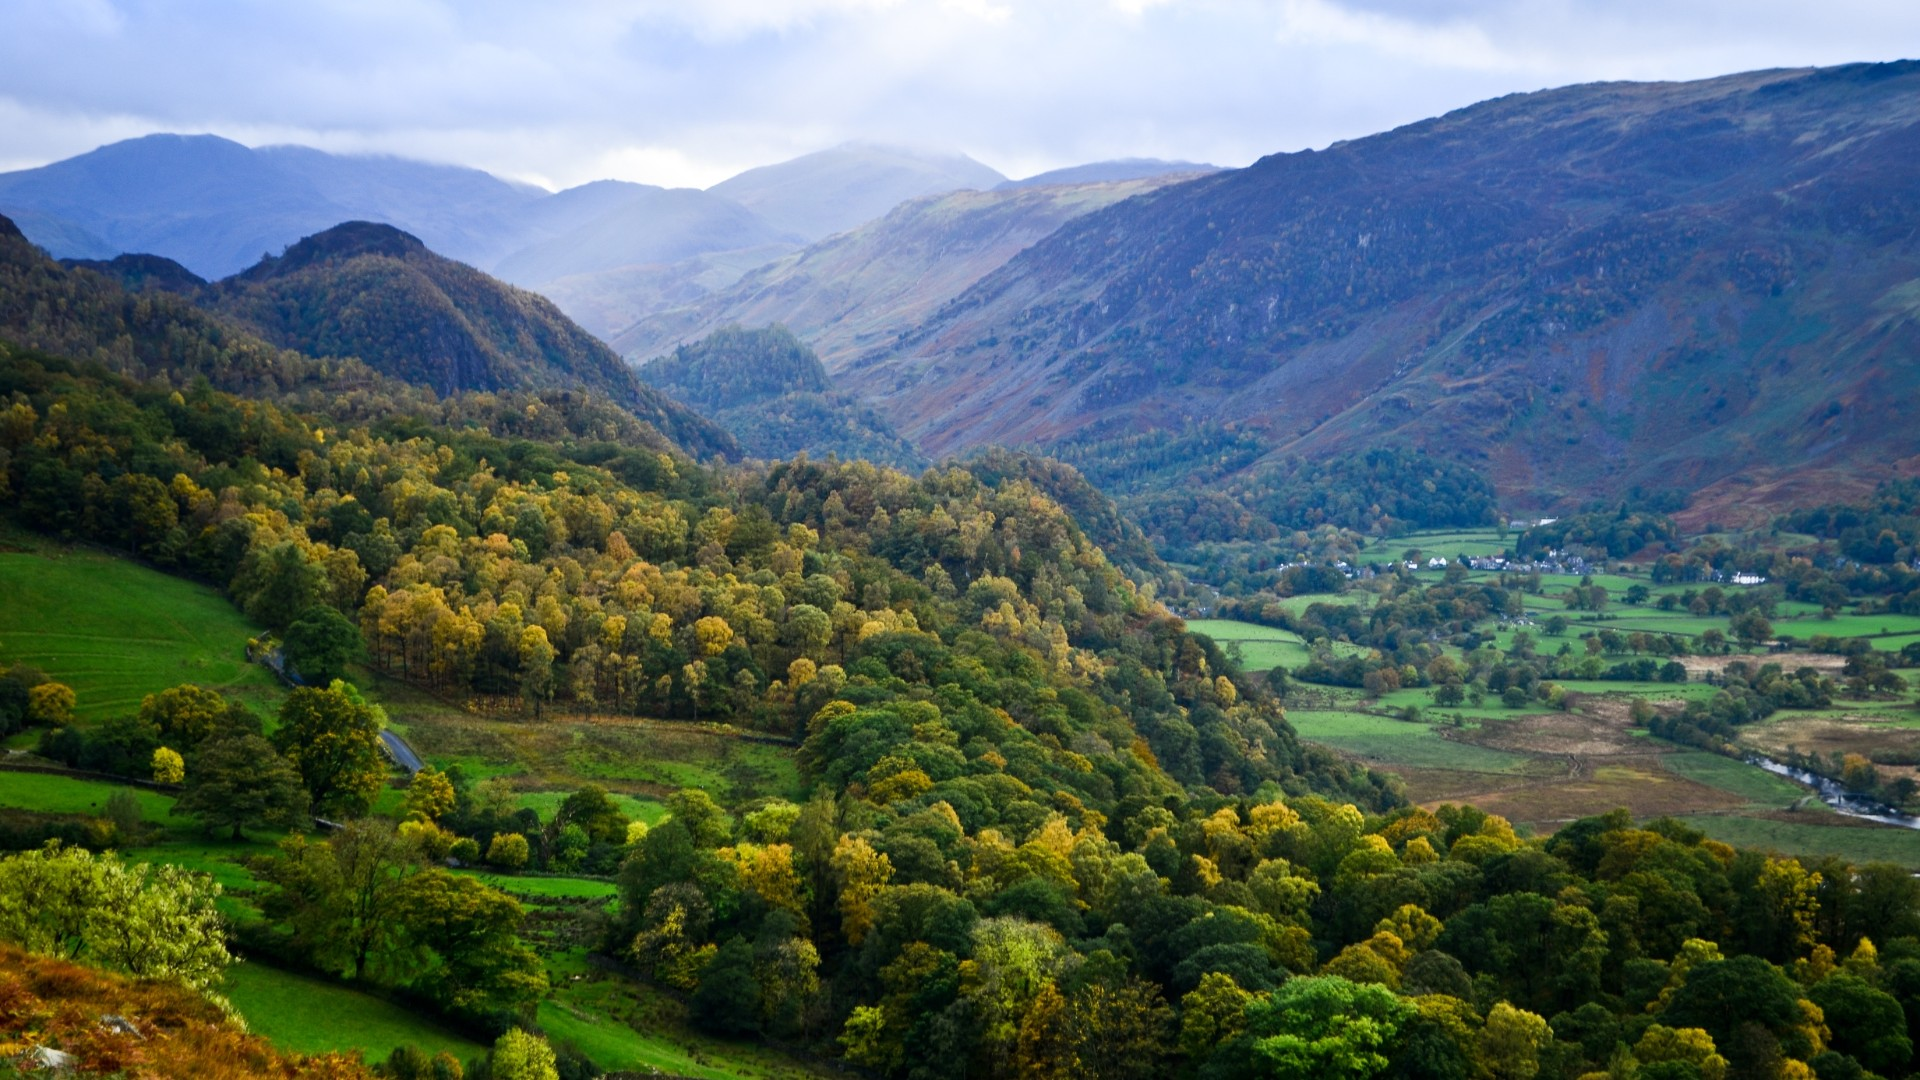 Heritage Open Day - Free guided walk to Ashness Bridge, Borrowdale